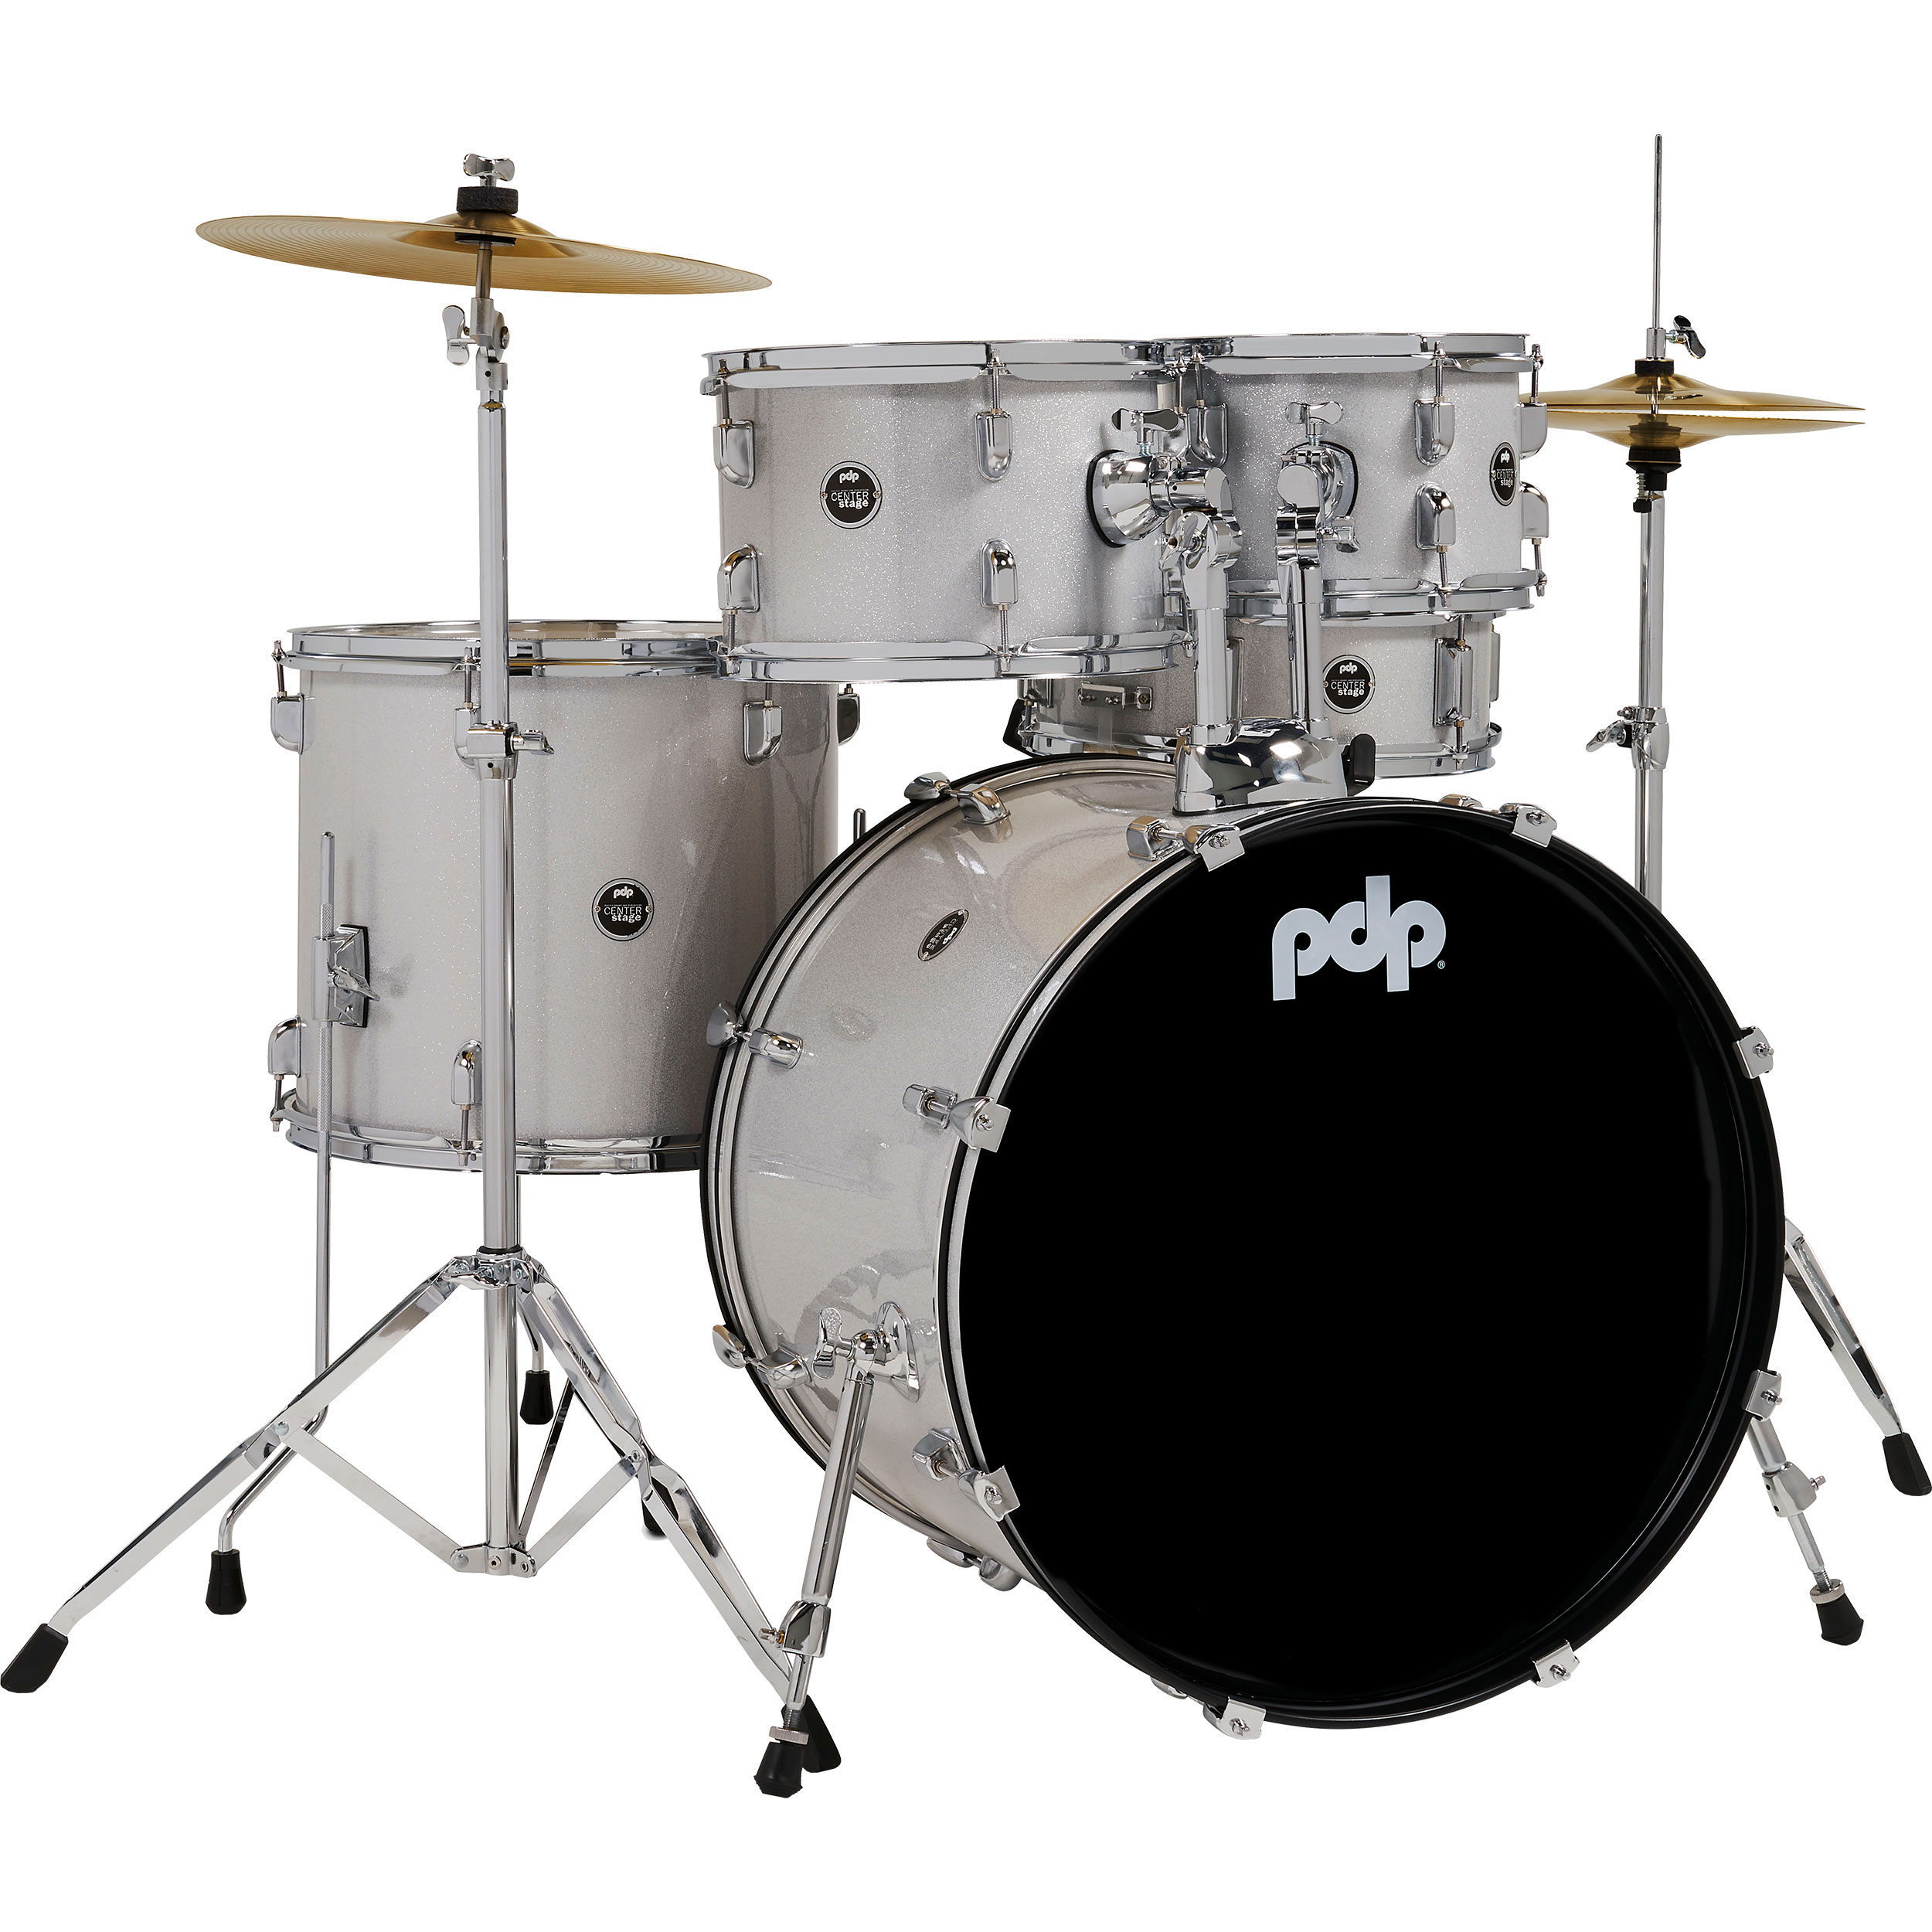 "PDP CENTERstage 5-Piece Drum Set with Hardware, Cymbals, and Throne (22"" Bass, 10/12/16"" Toms, 14"" Snare)"